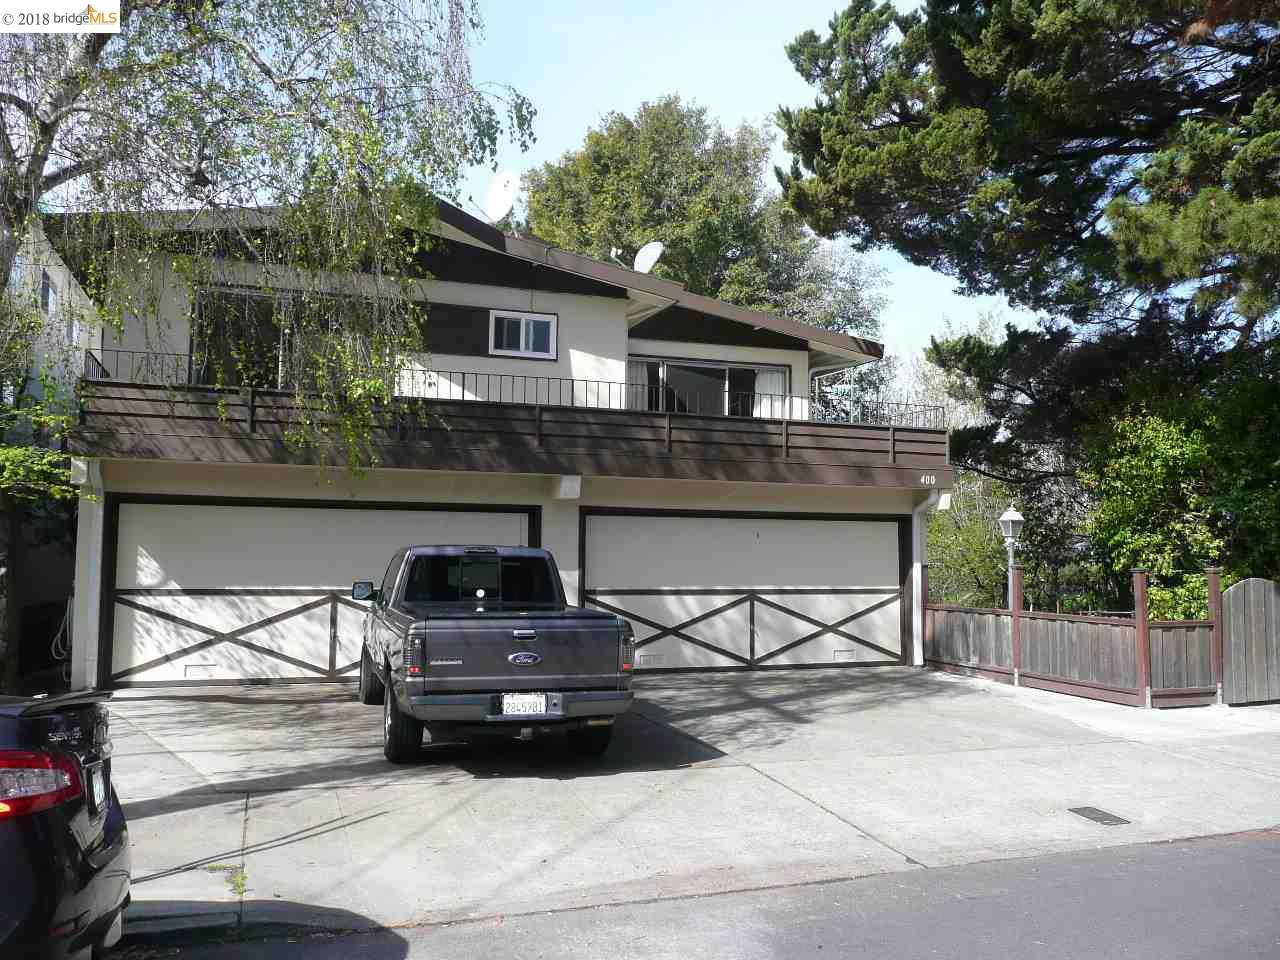 Multi-Family Home for Sale at 400 Stannage Avenue 400 Stannage Avenue Albany, California 94706 United States